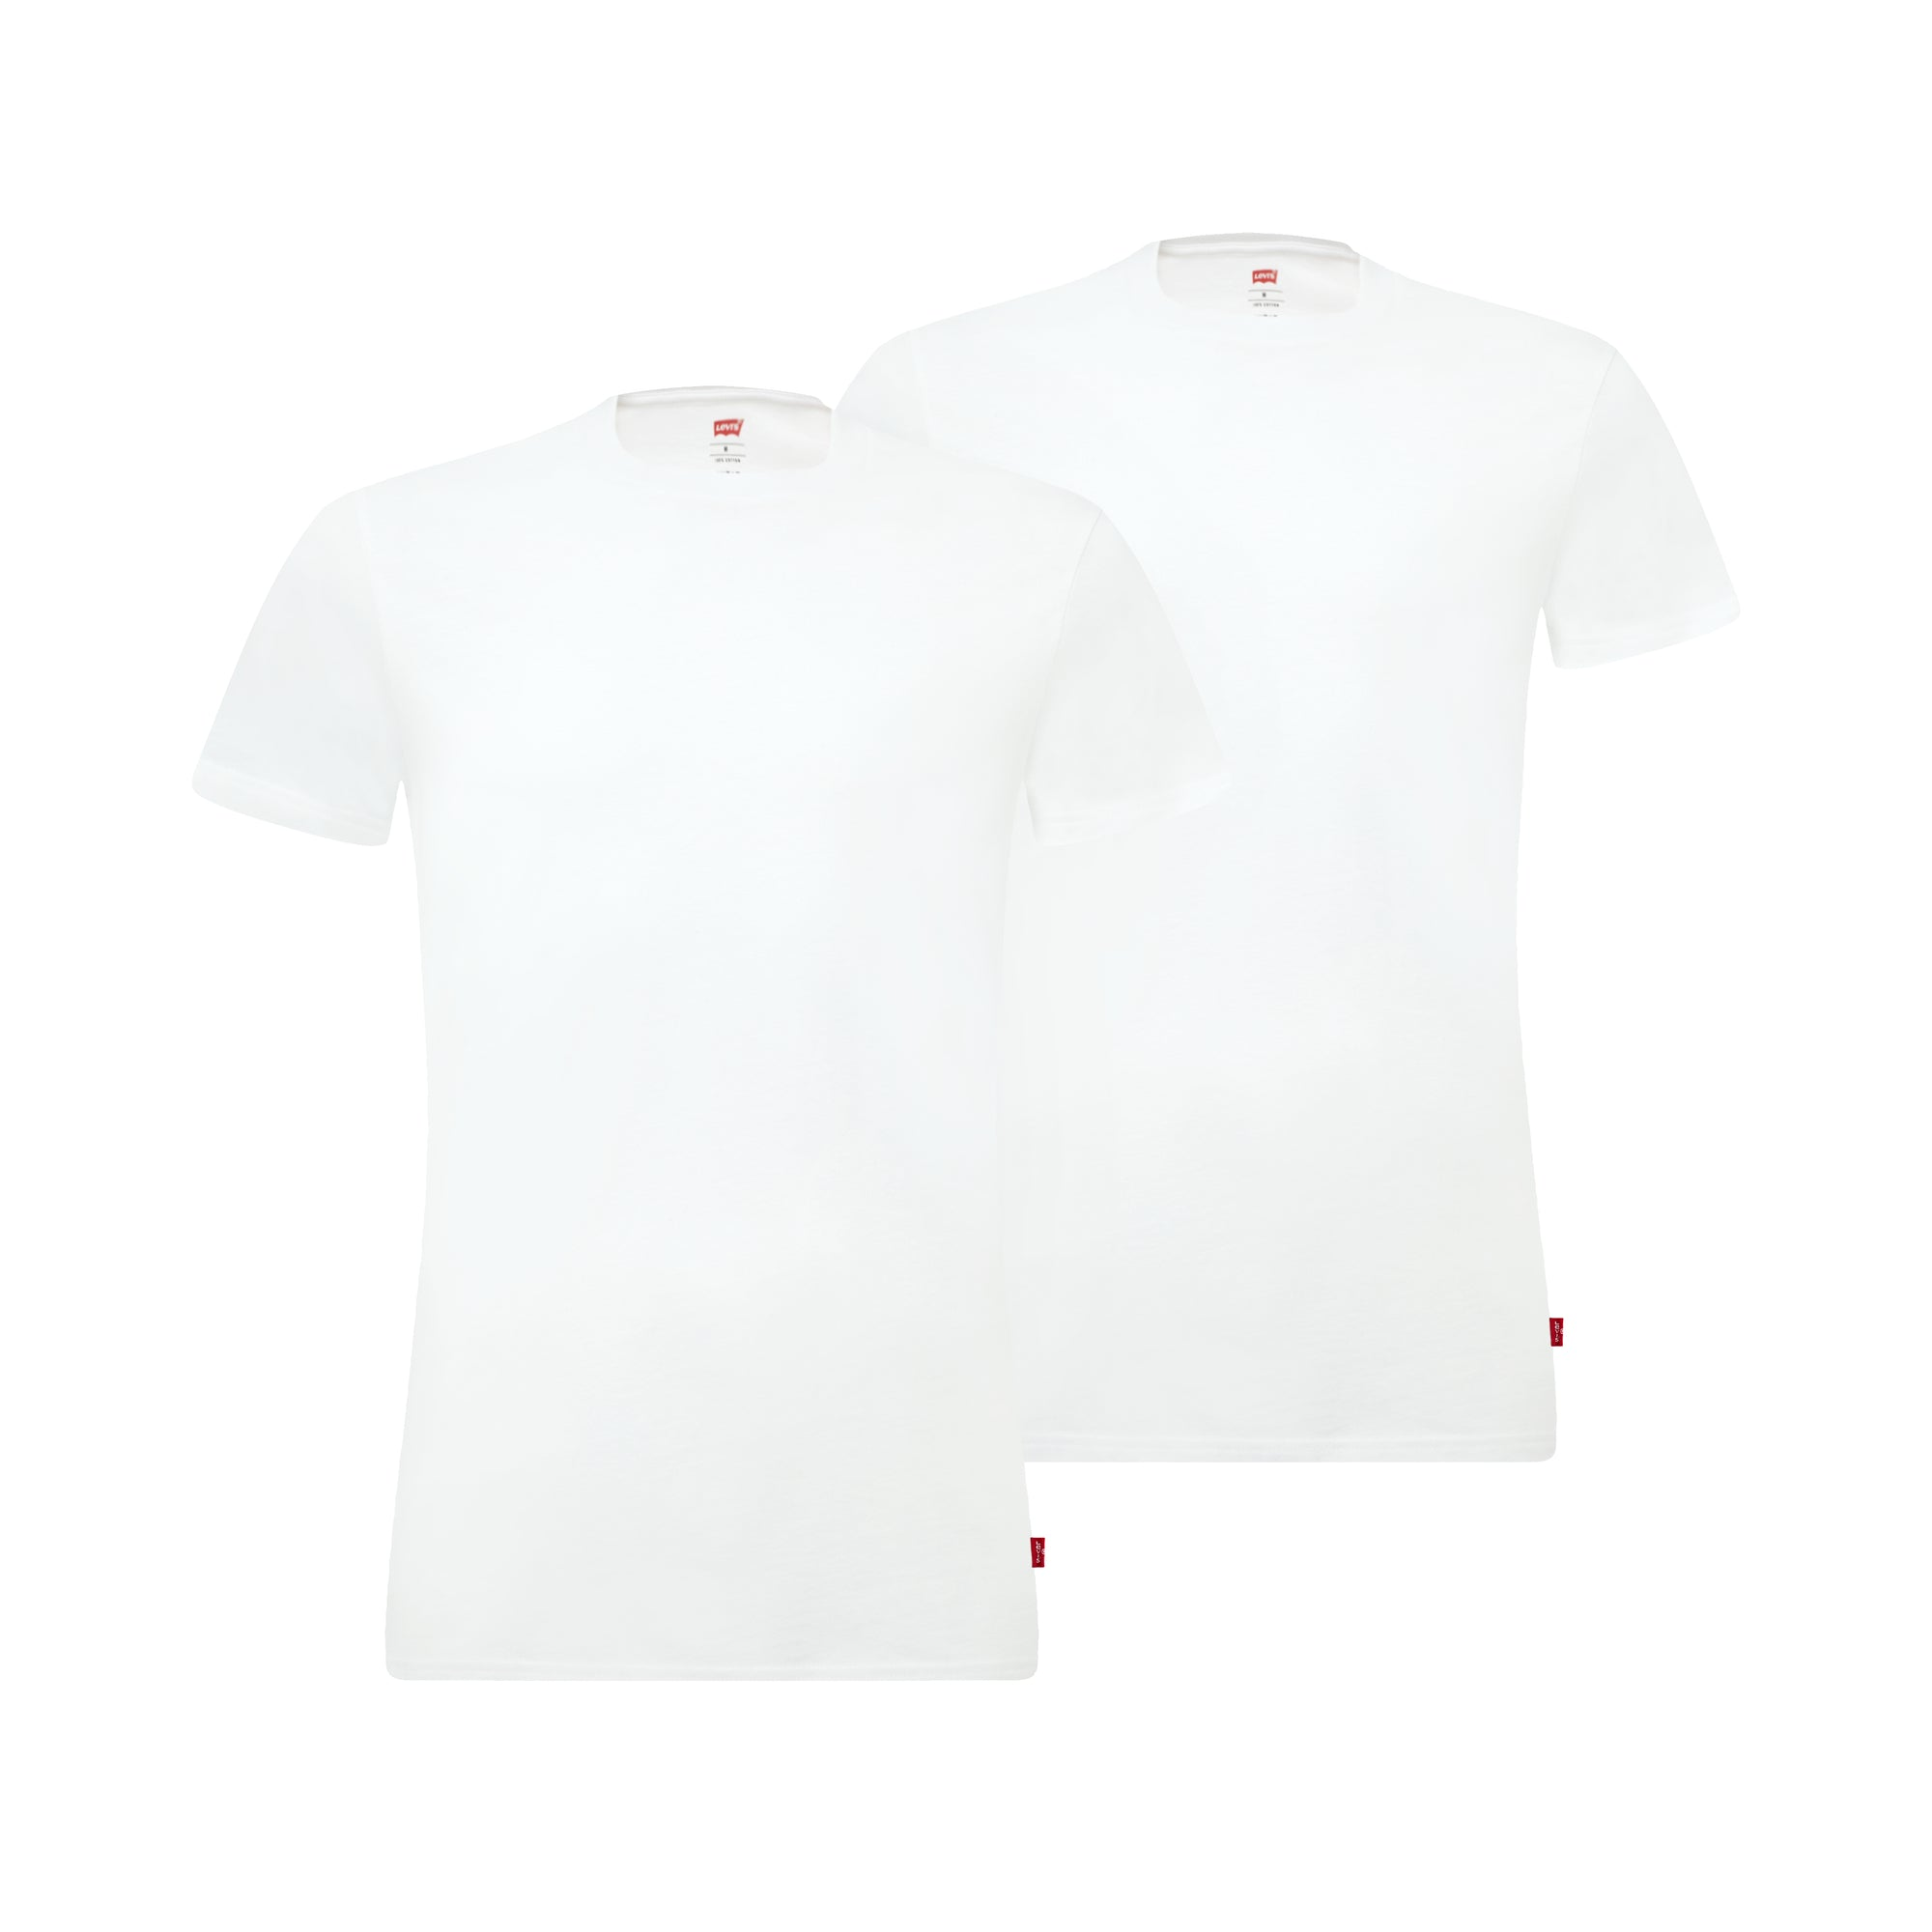 Levis 2 Pack Solid T-Shirt